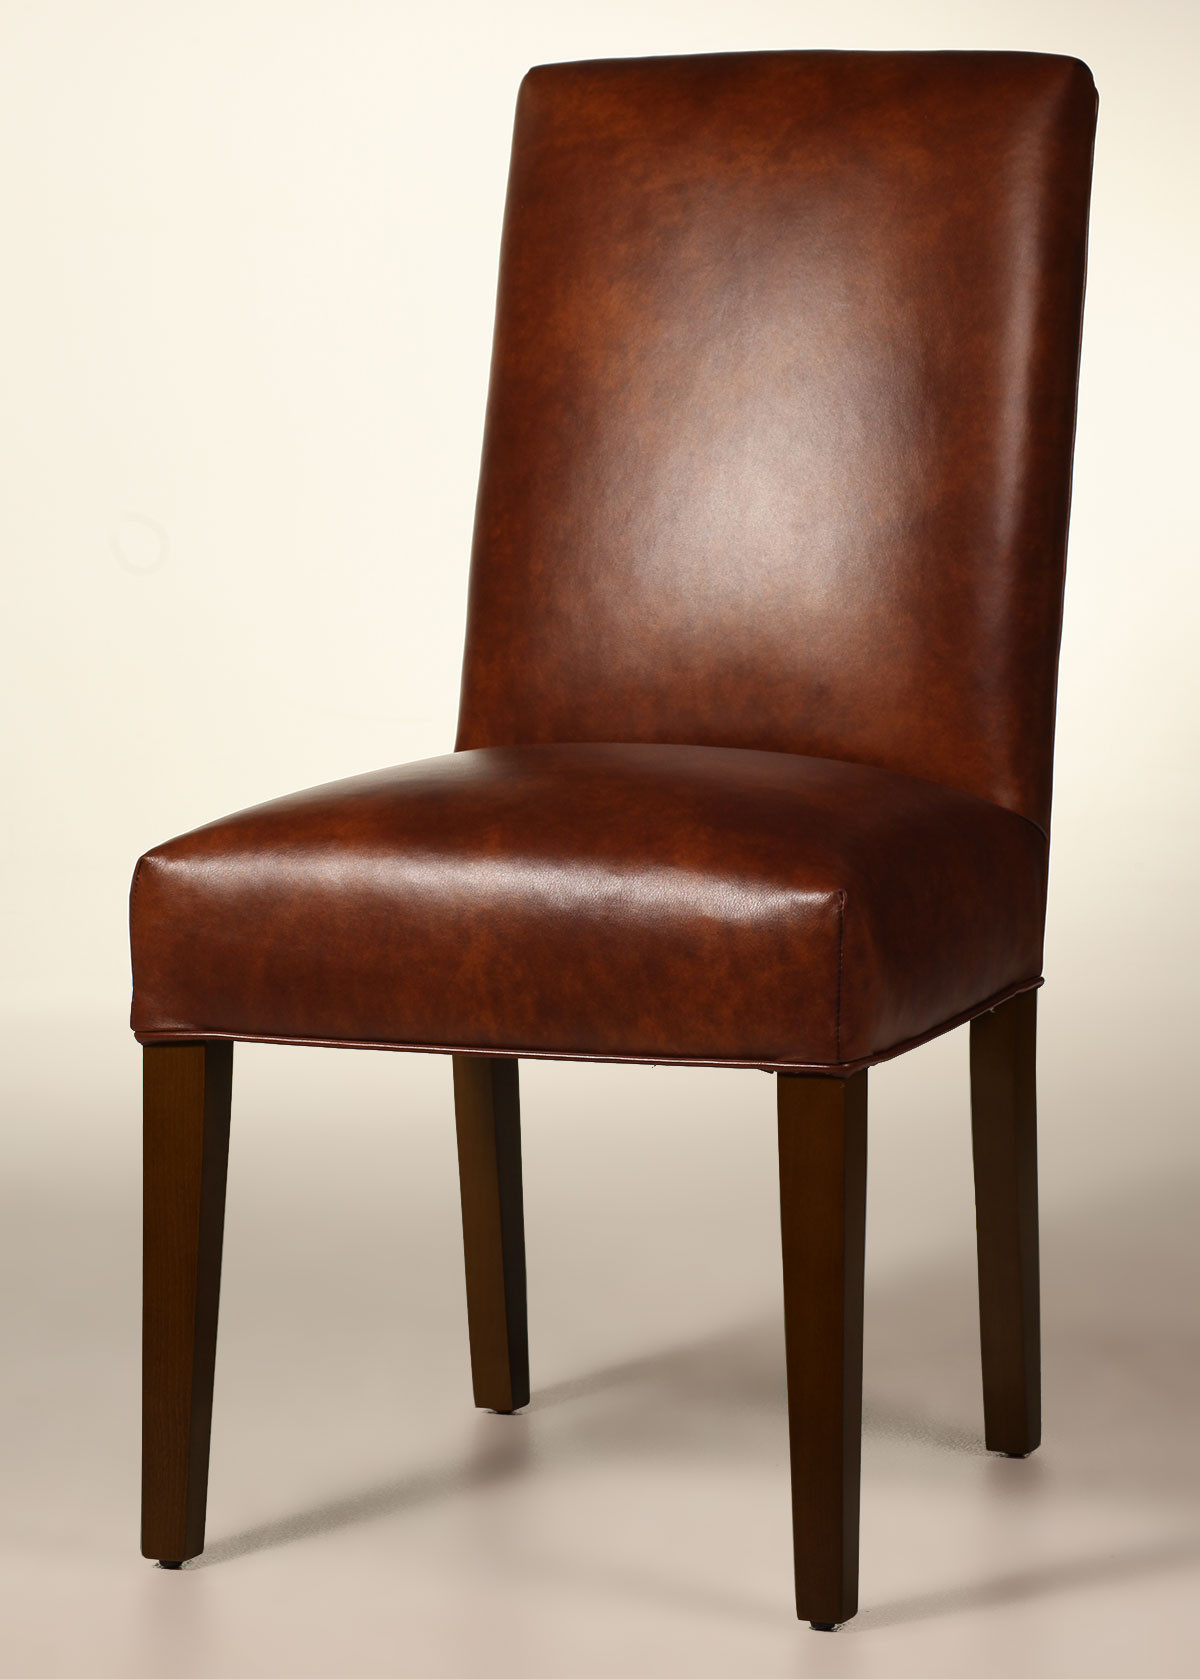 Best ideas about Leather Dining Chair . Save or Pin Bristol Straight Back Leather Dining Chair with Tapered Now.